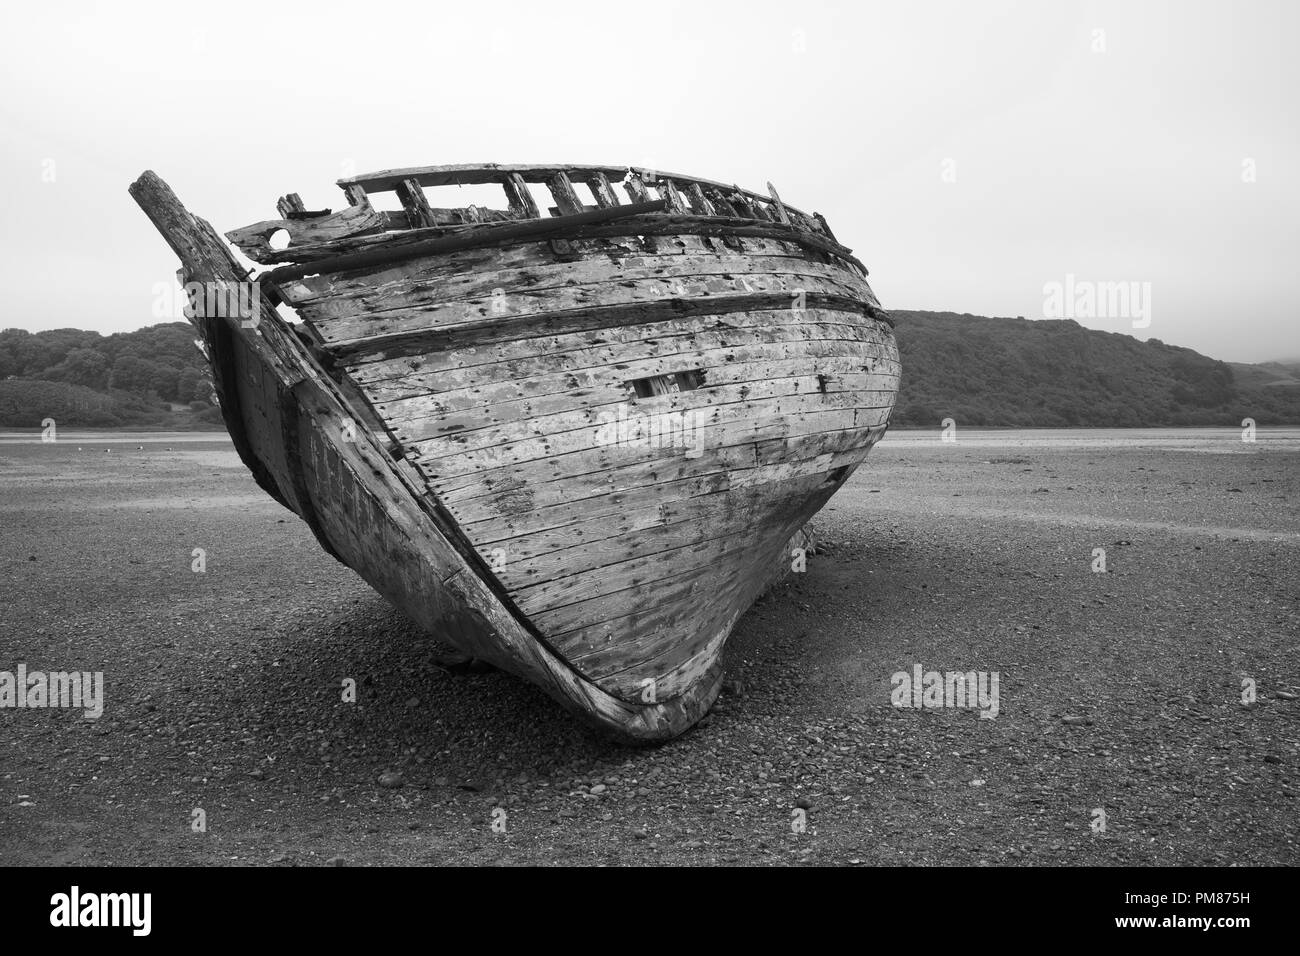 abandoned ship on beach - Stock Image